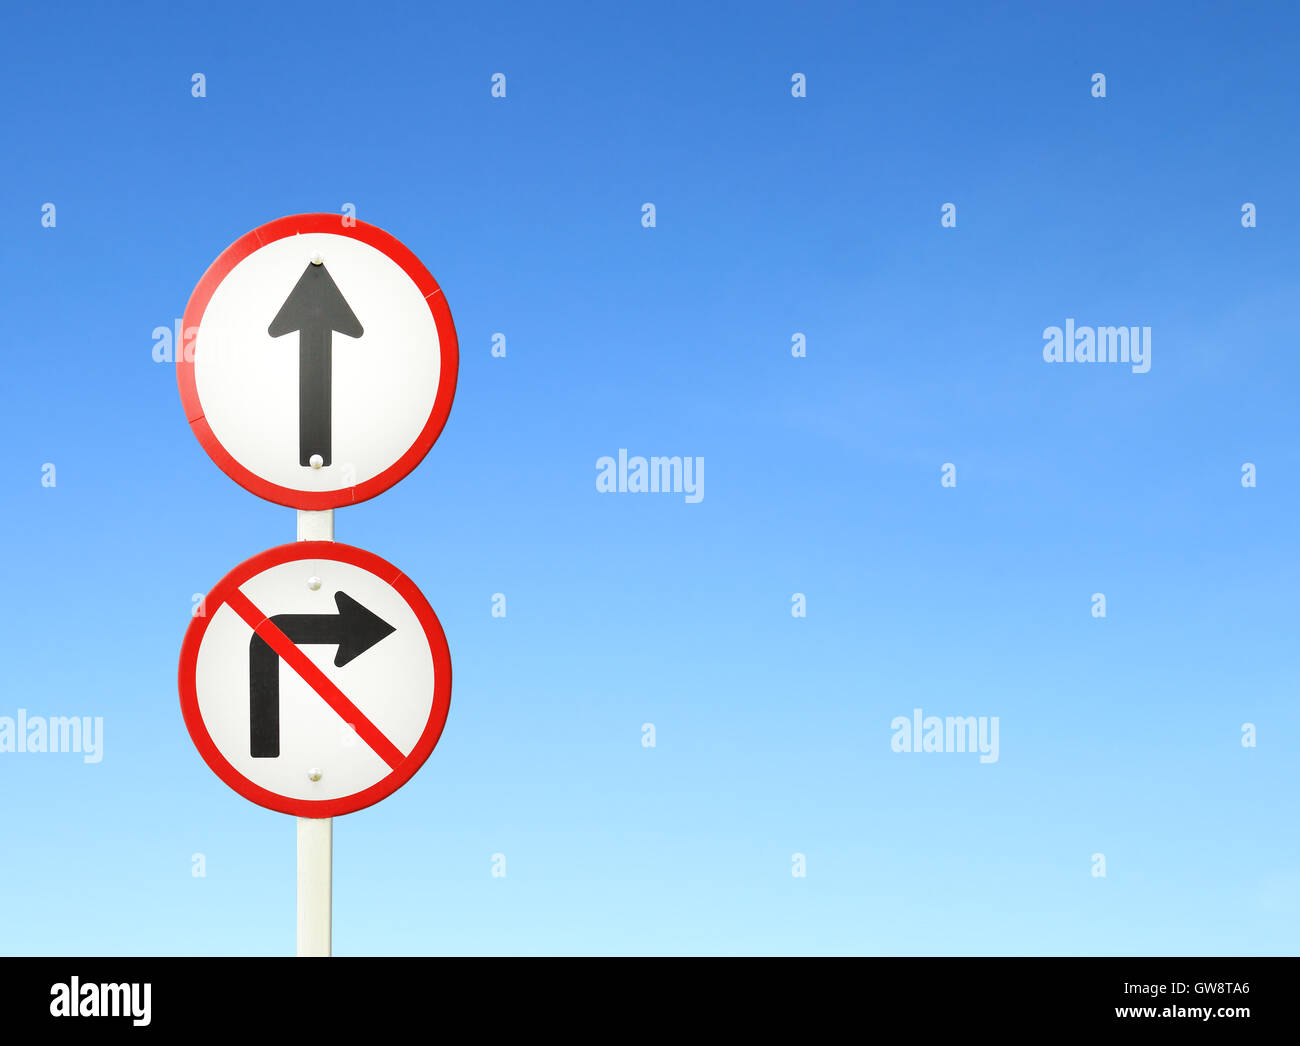 go ahead the way ,forward sign and don't turn right sign - Stock Image